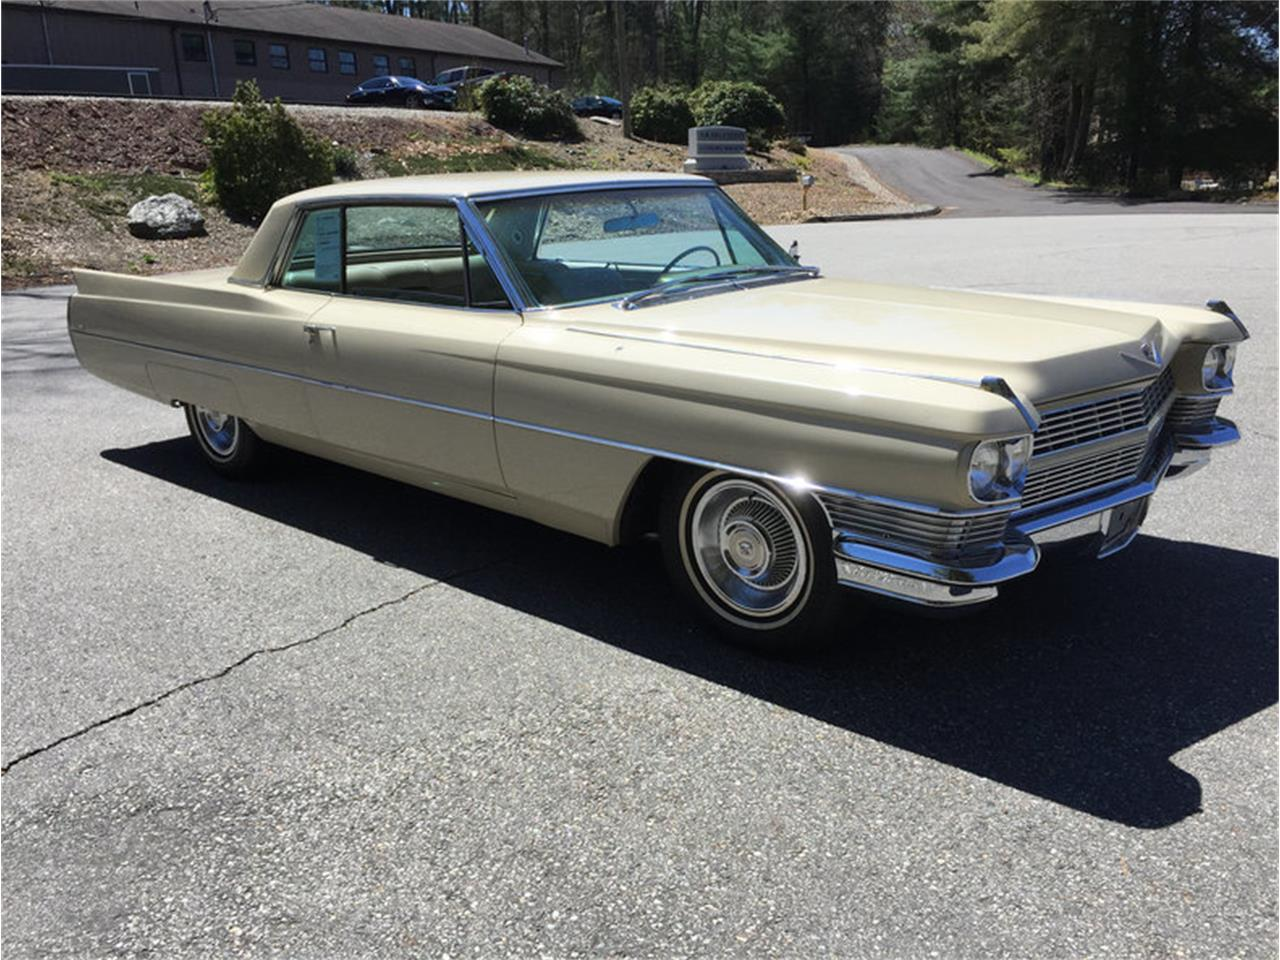 1964 Cadillac Coupe DeVille Restomod for Sale | ClassicCars